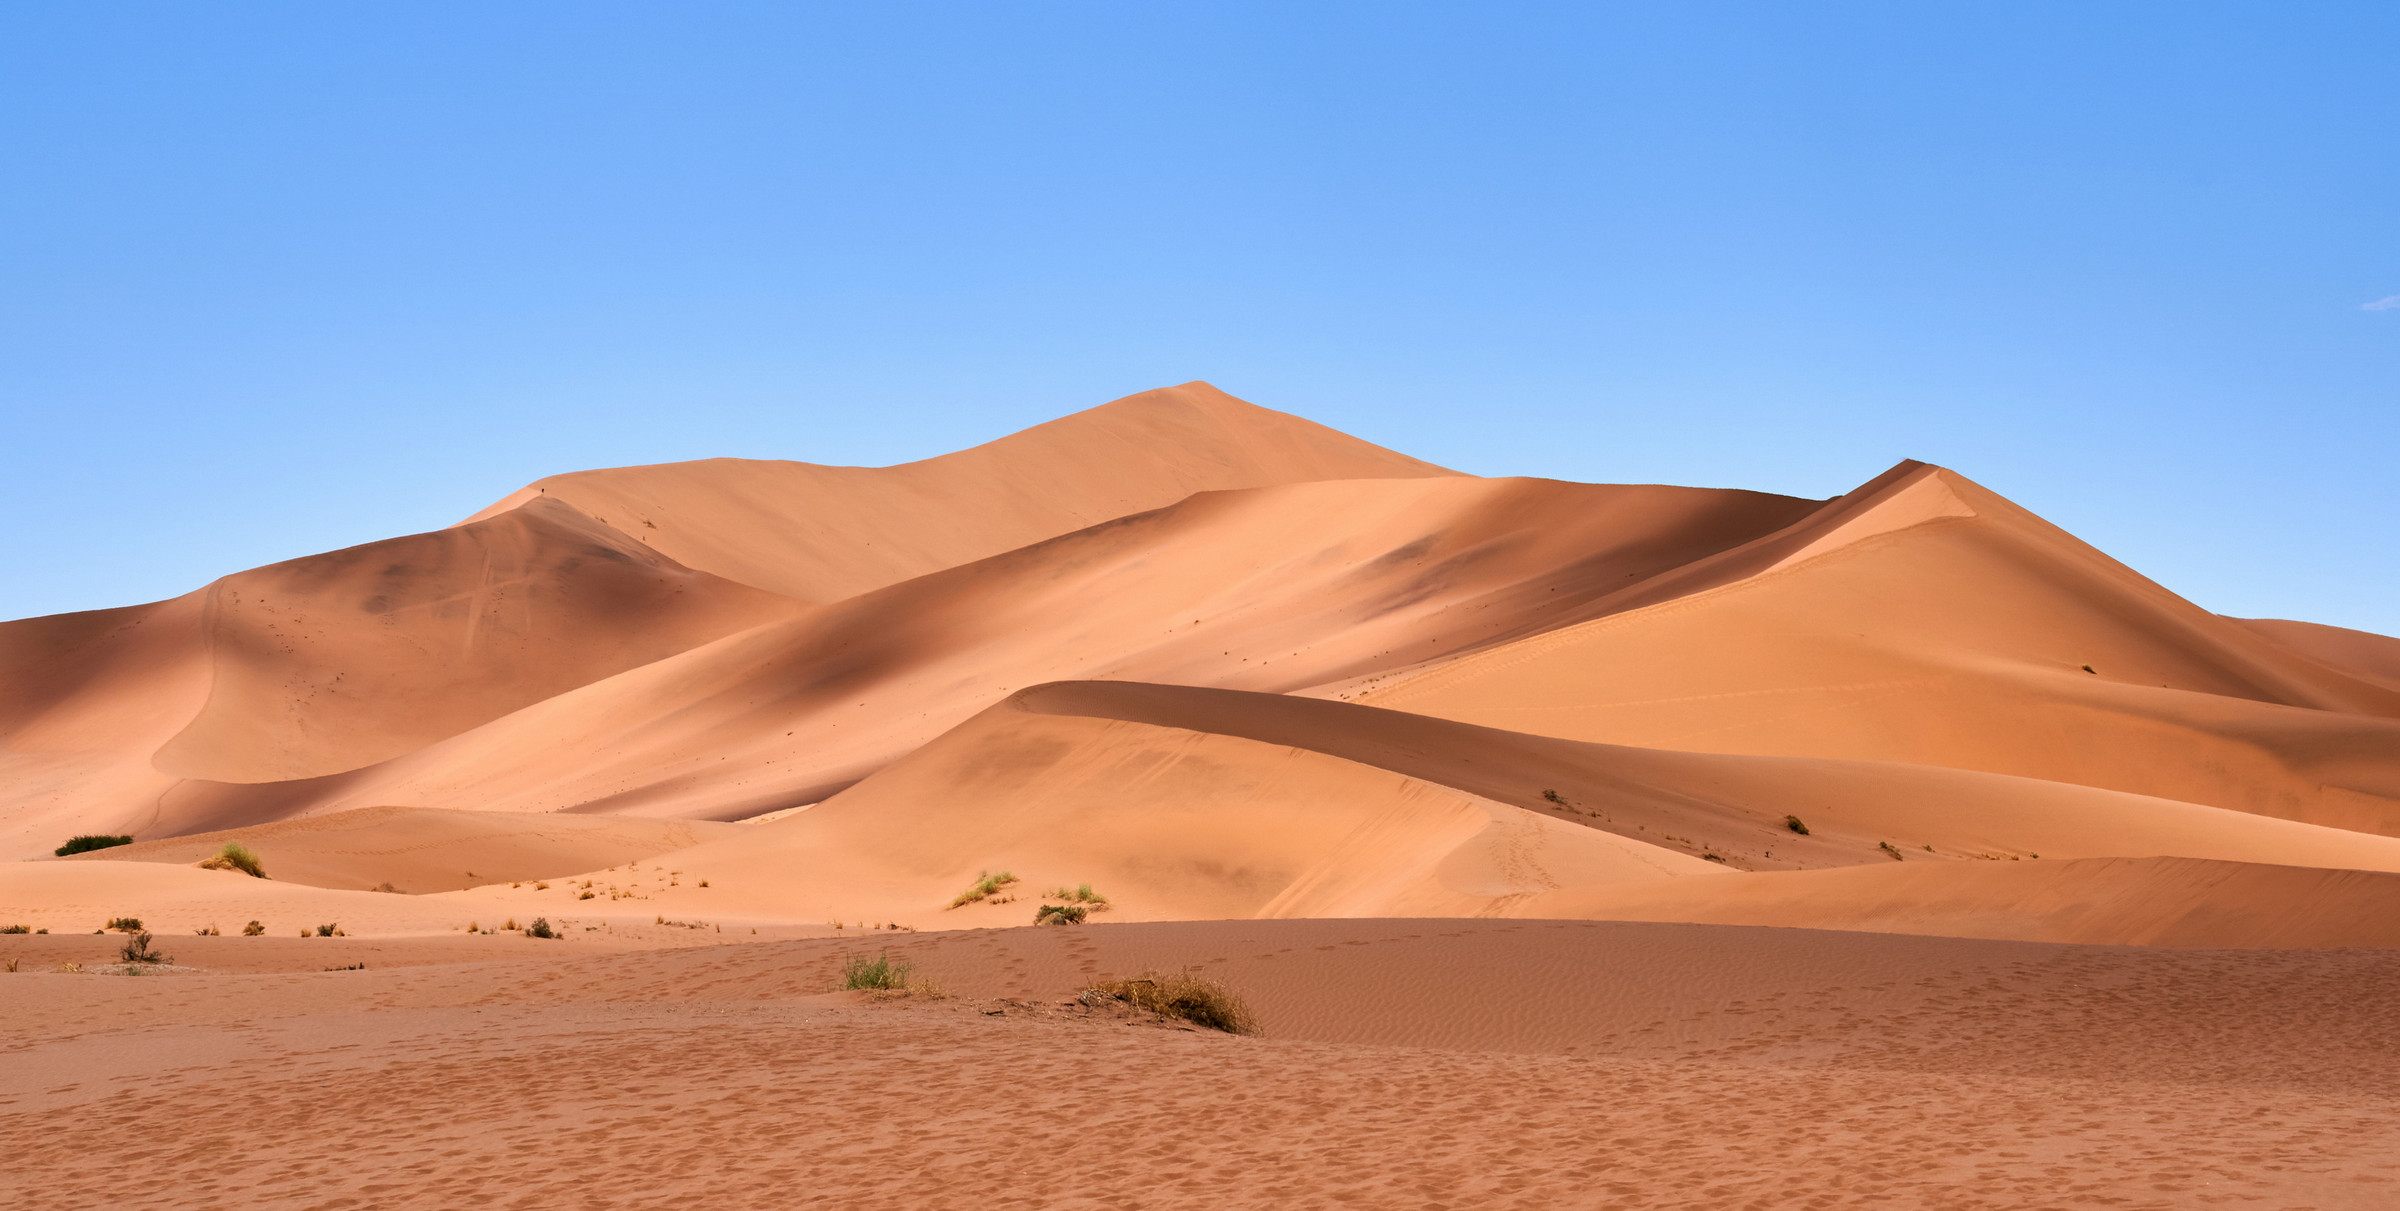 The 12 most beautiful places in the world. No.12: Red… dunes.